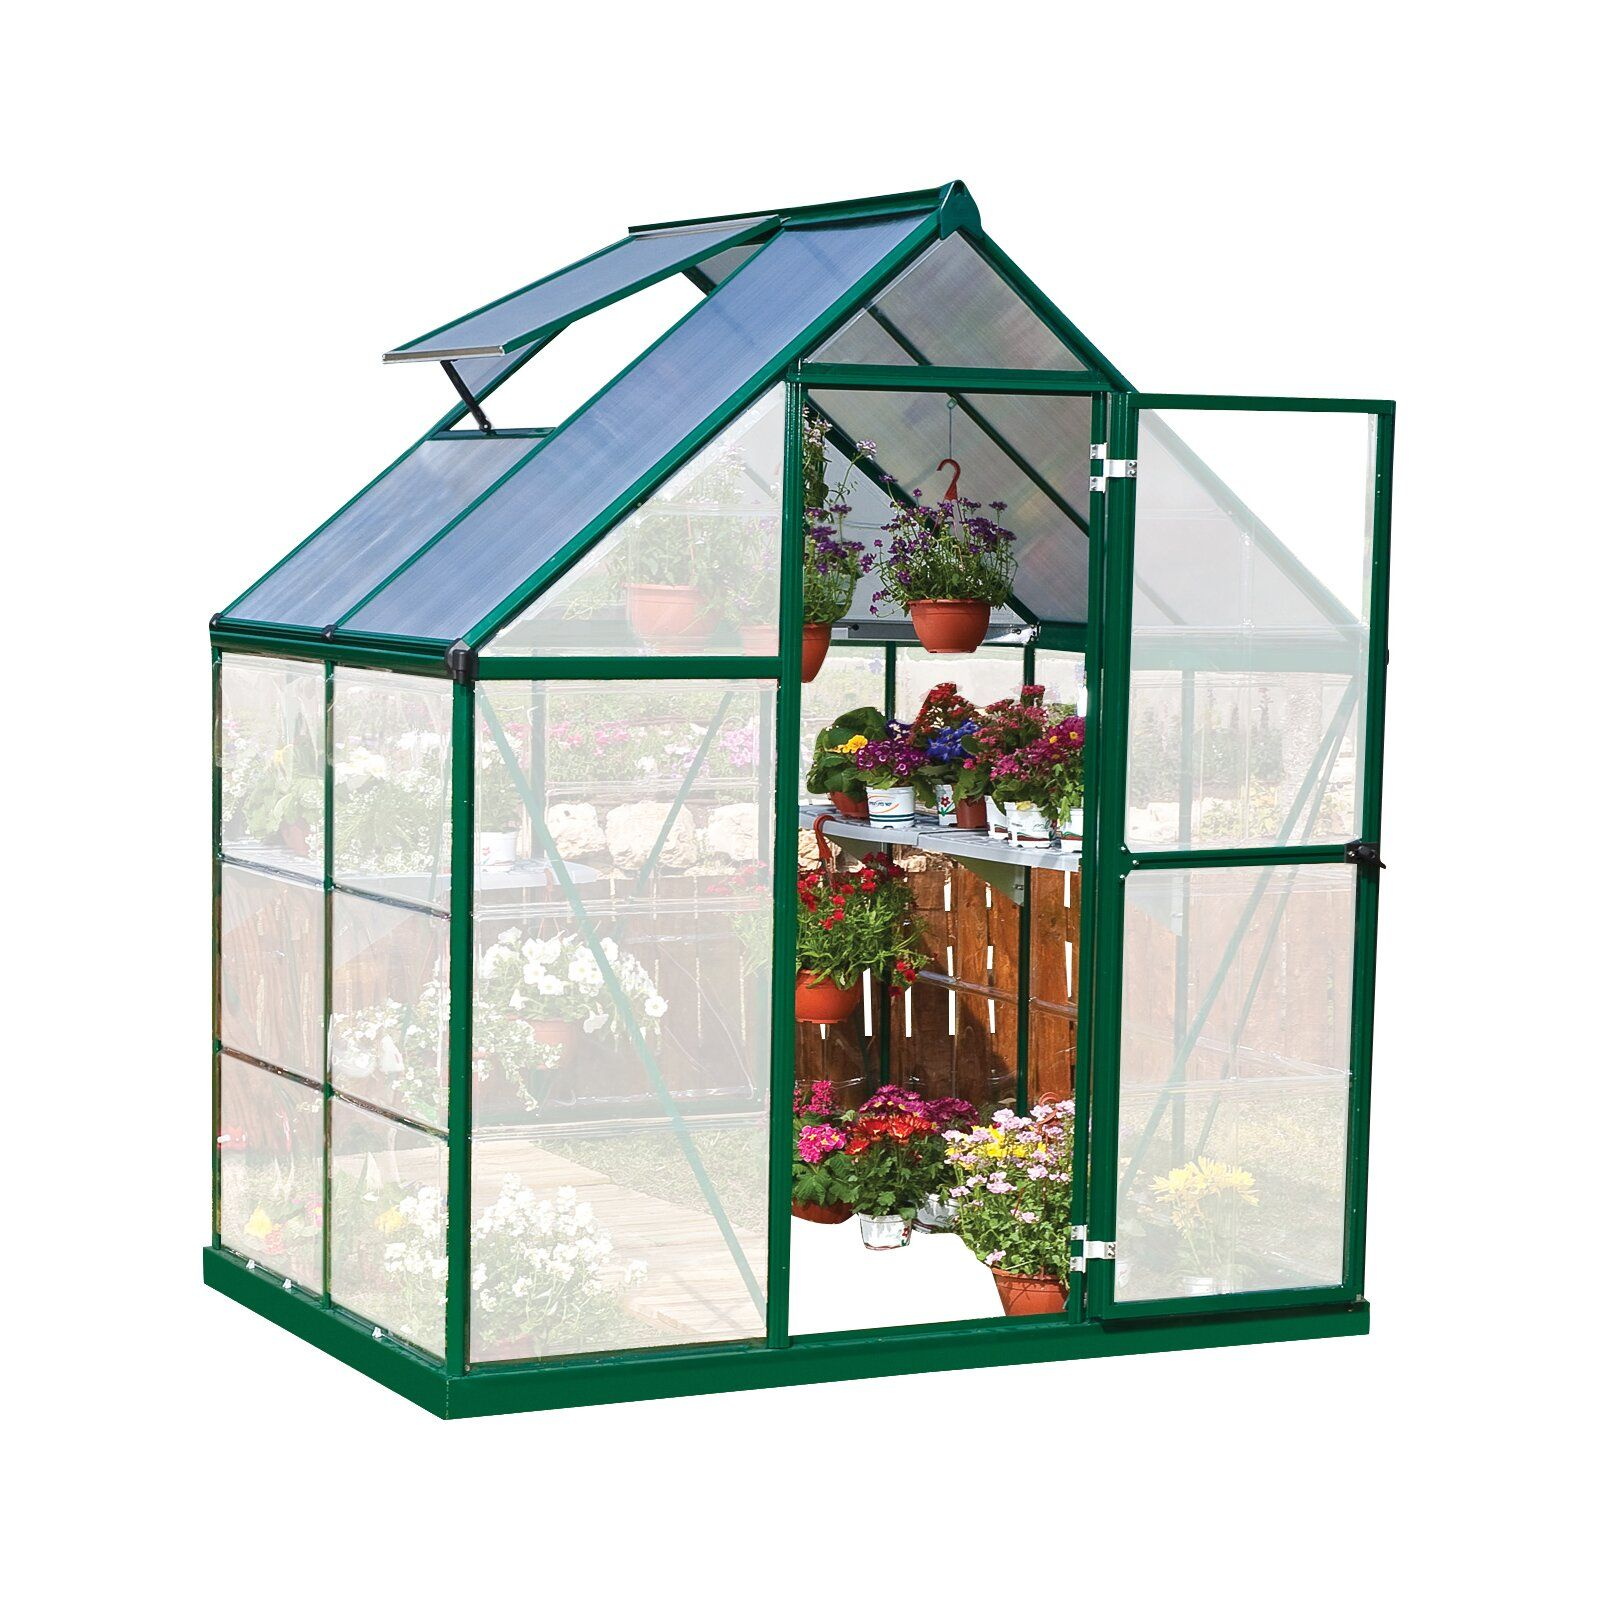 Hybrid 6 Ft  W x 4 5 Ft  D Polycarbonate Greenhouse in 2019